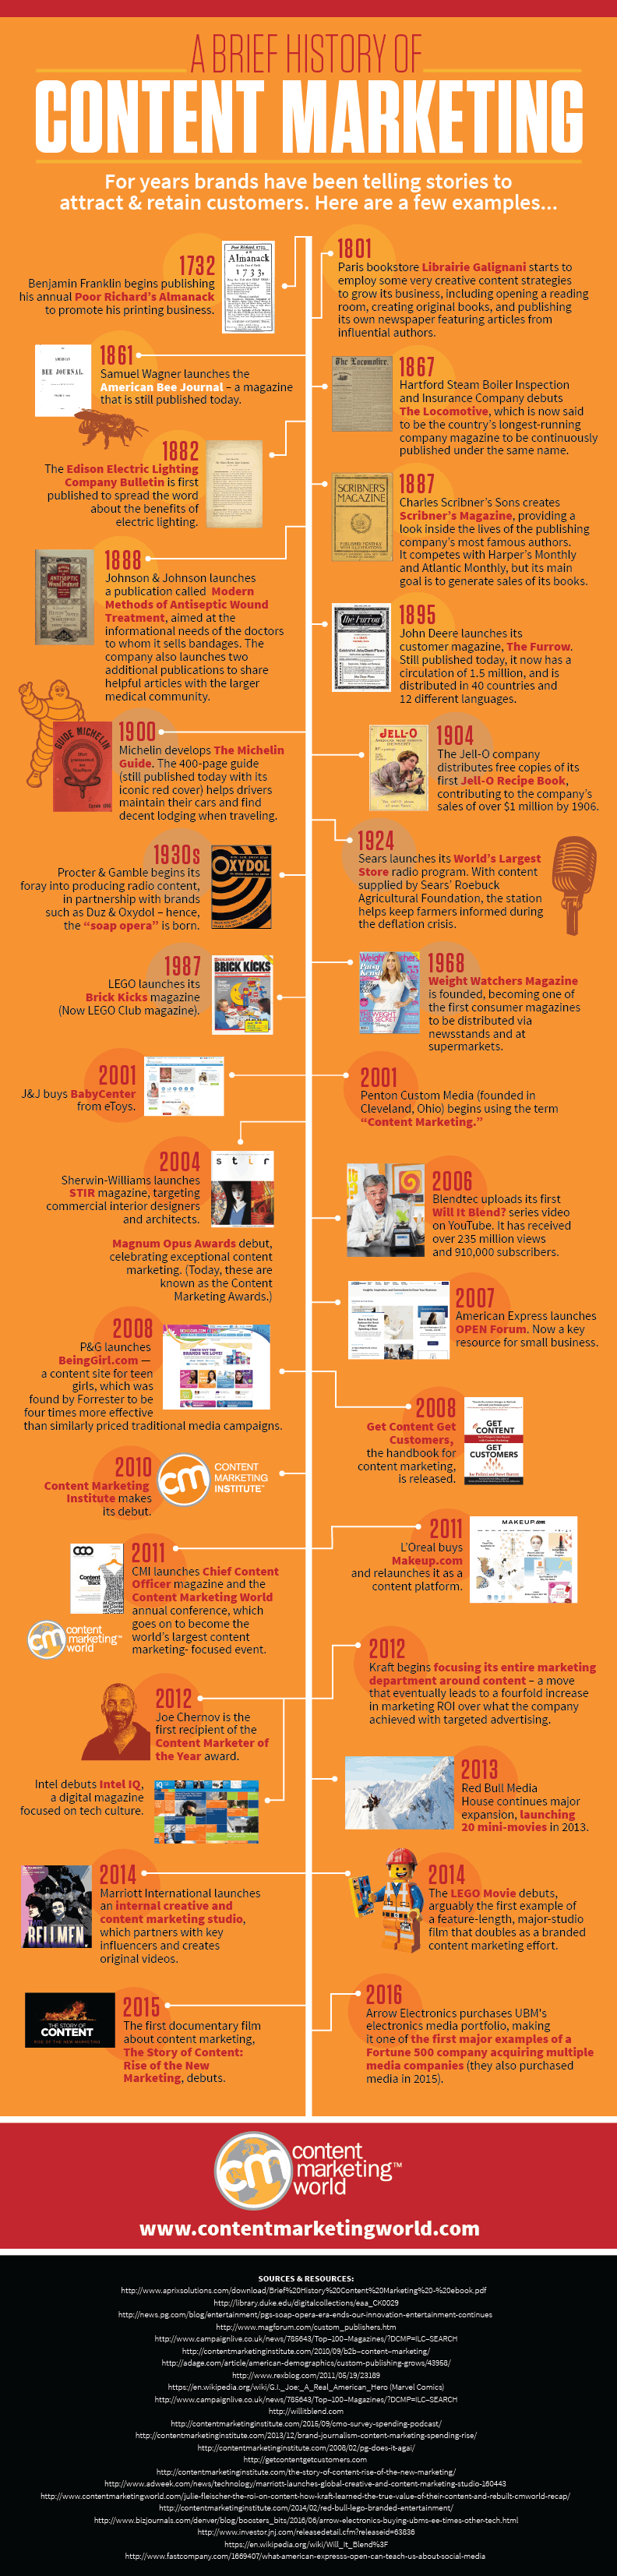 History of Content Marketing 2016